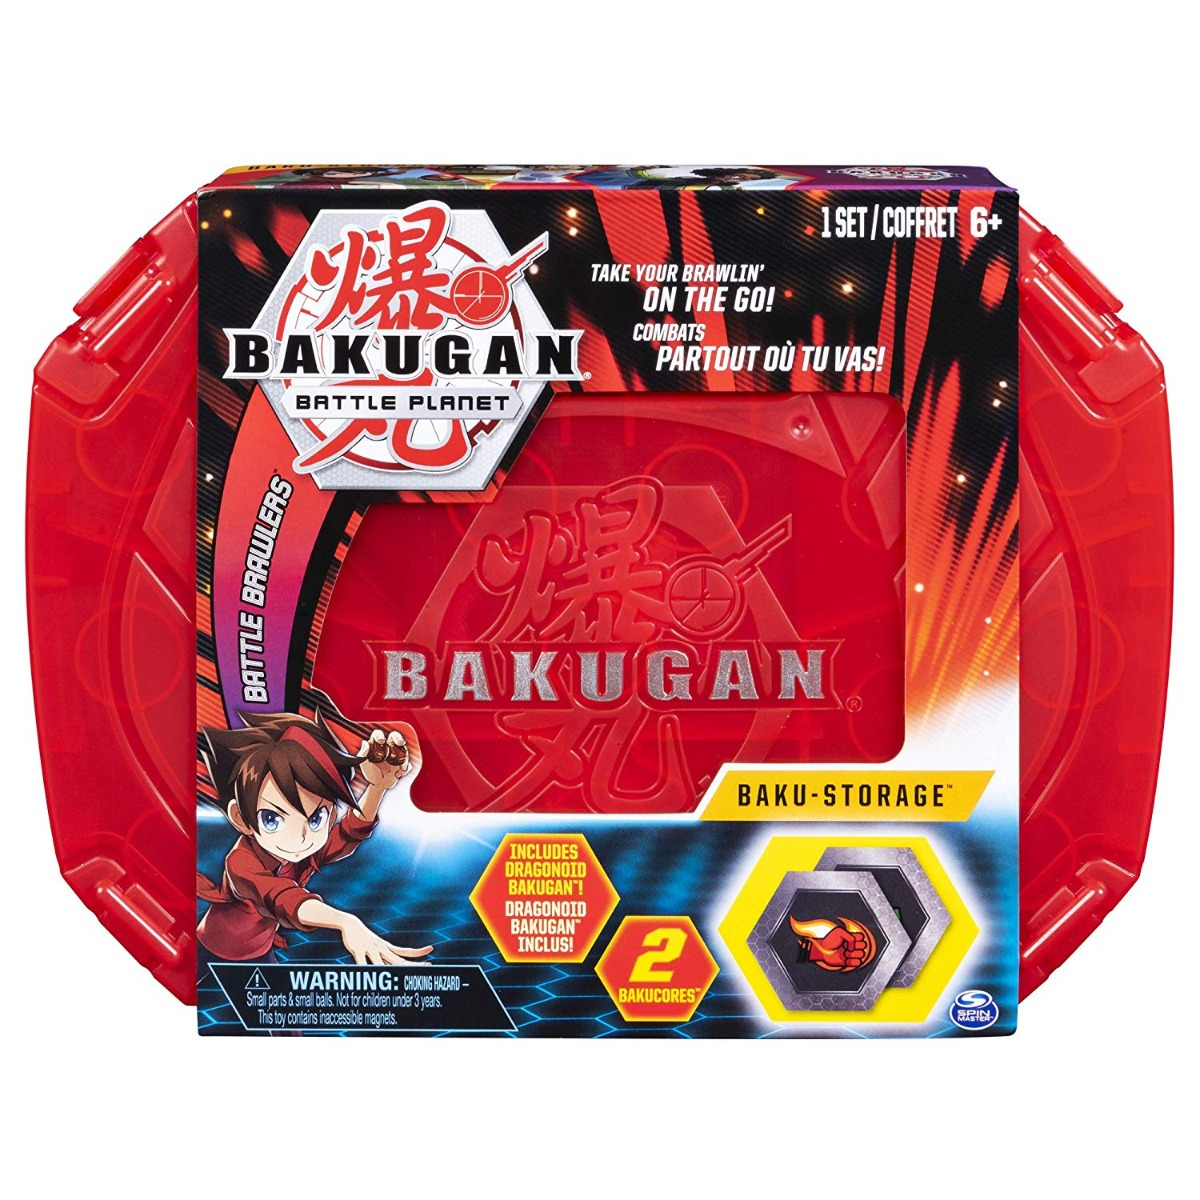 Set Baku-cutie de depozitare Bakugan Battle Planet, Red, 20104005